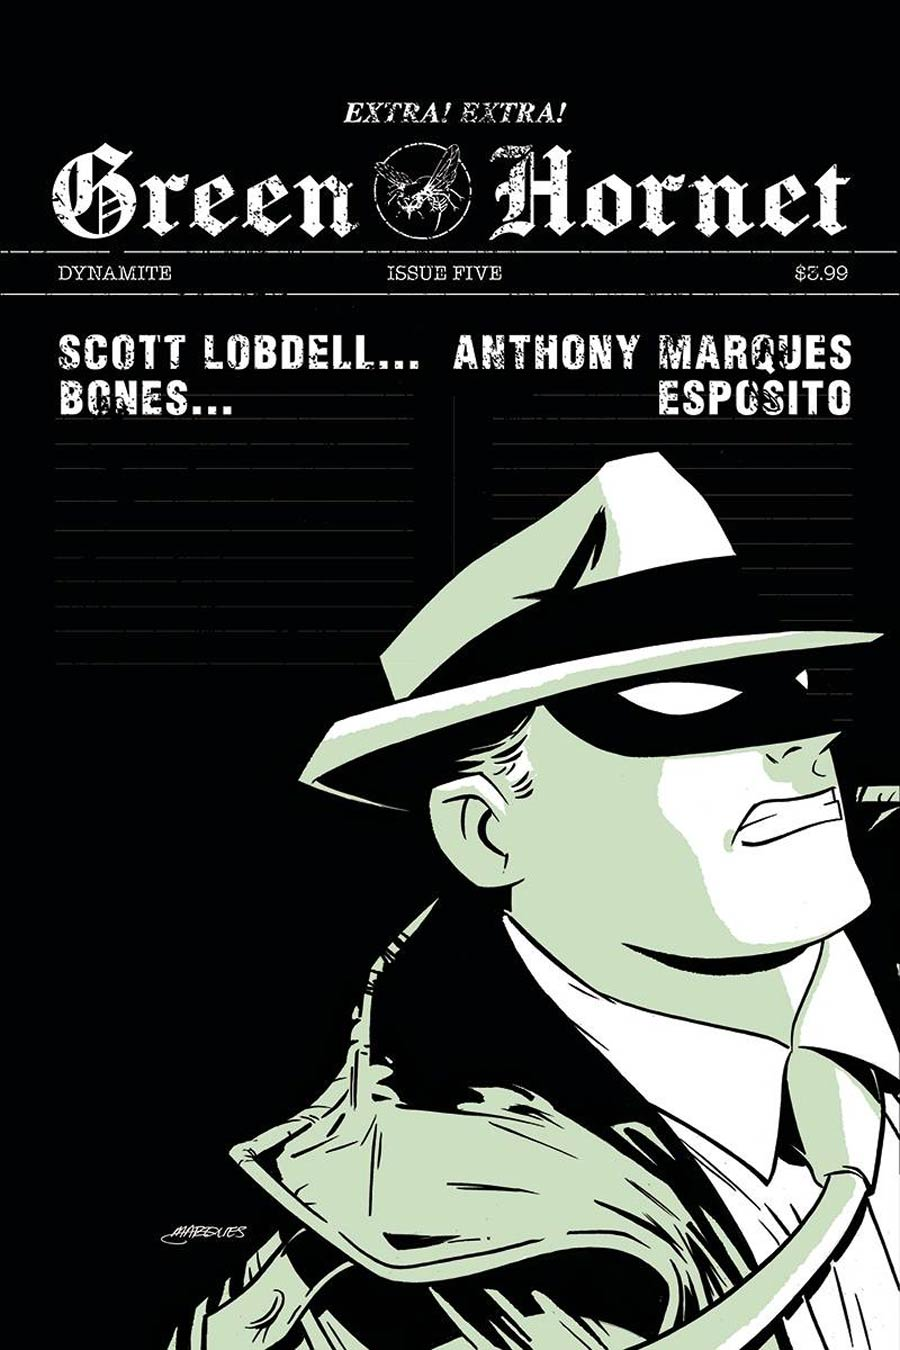 Green Hornet Vol 5 #5 Cover B Variant Anthony Marques Cover